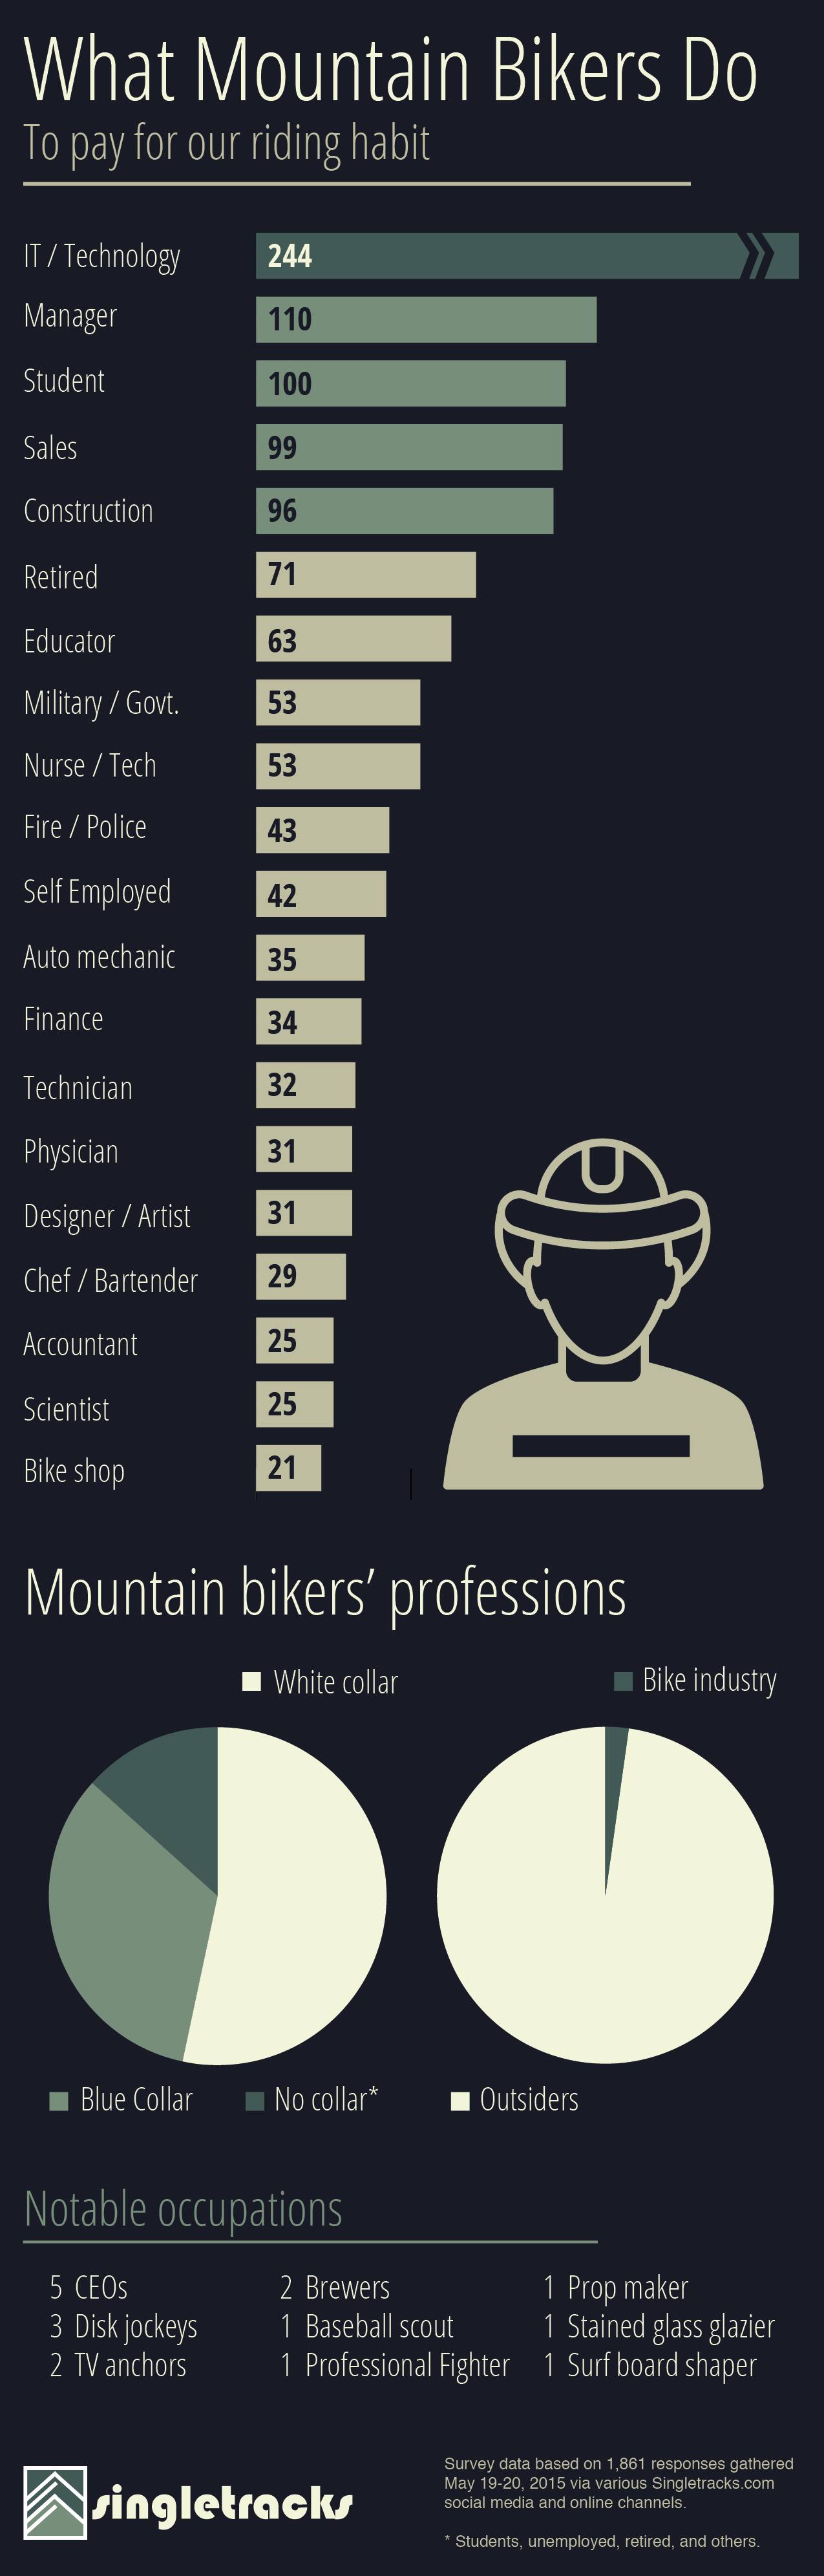 mountain bikers occupations what we do to pay for our habit i ve met a lot of mountain bikers over the years and i m always fascinated to meet people diverse occupations out on the trail